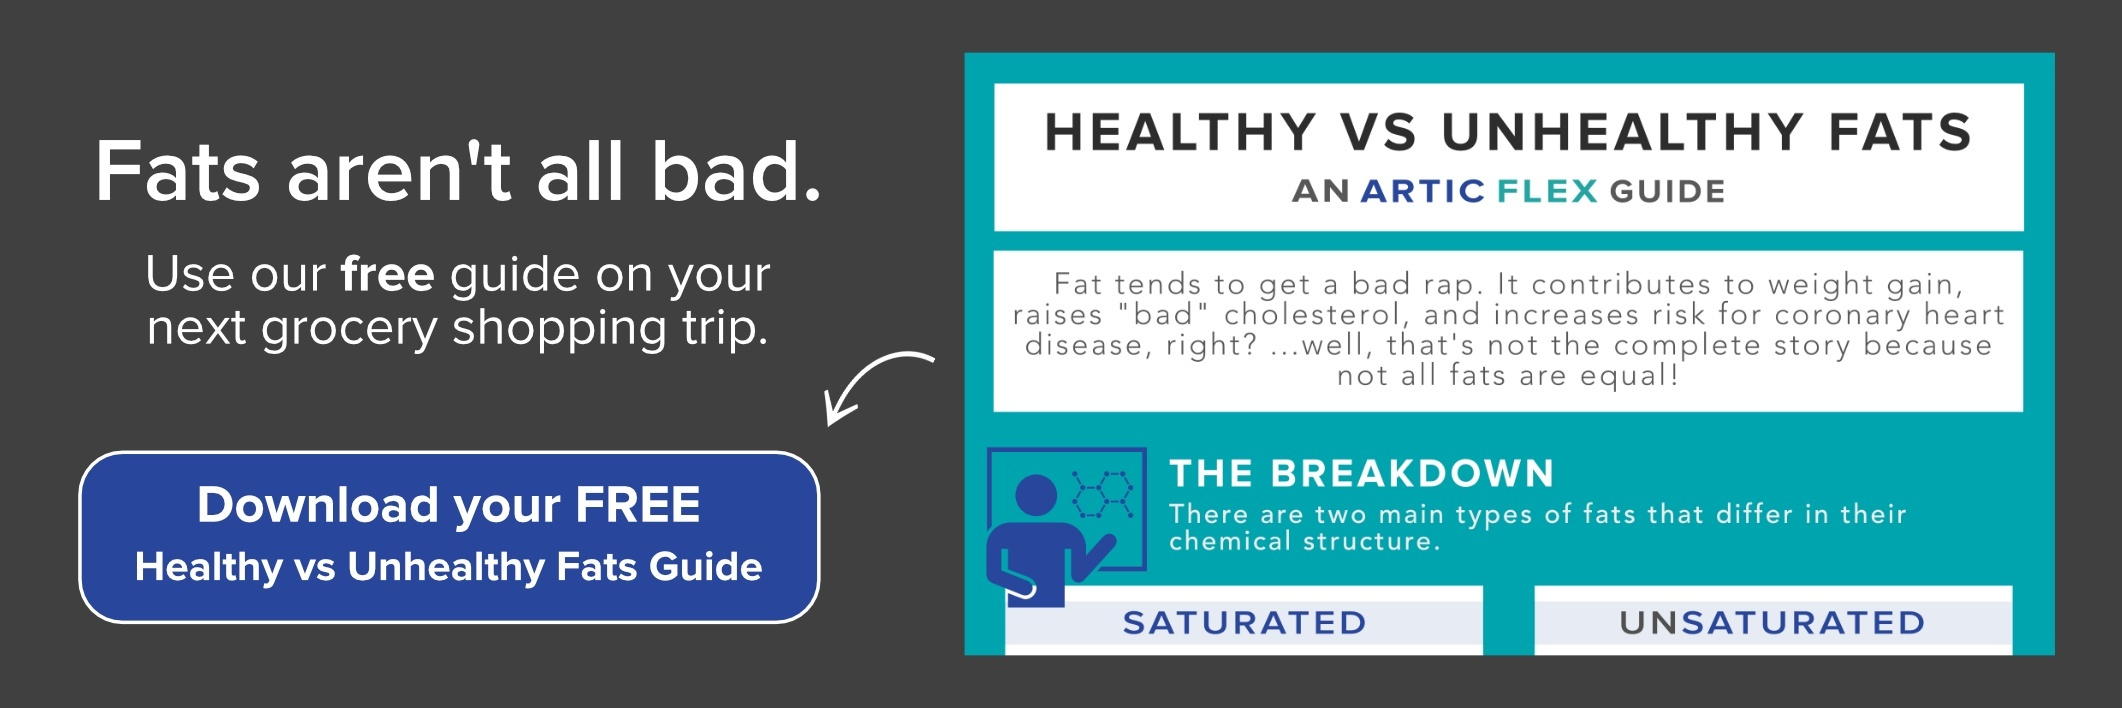 Download the FREE Healthy vs Unhealthy Fats Guide